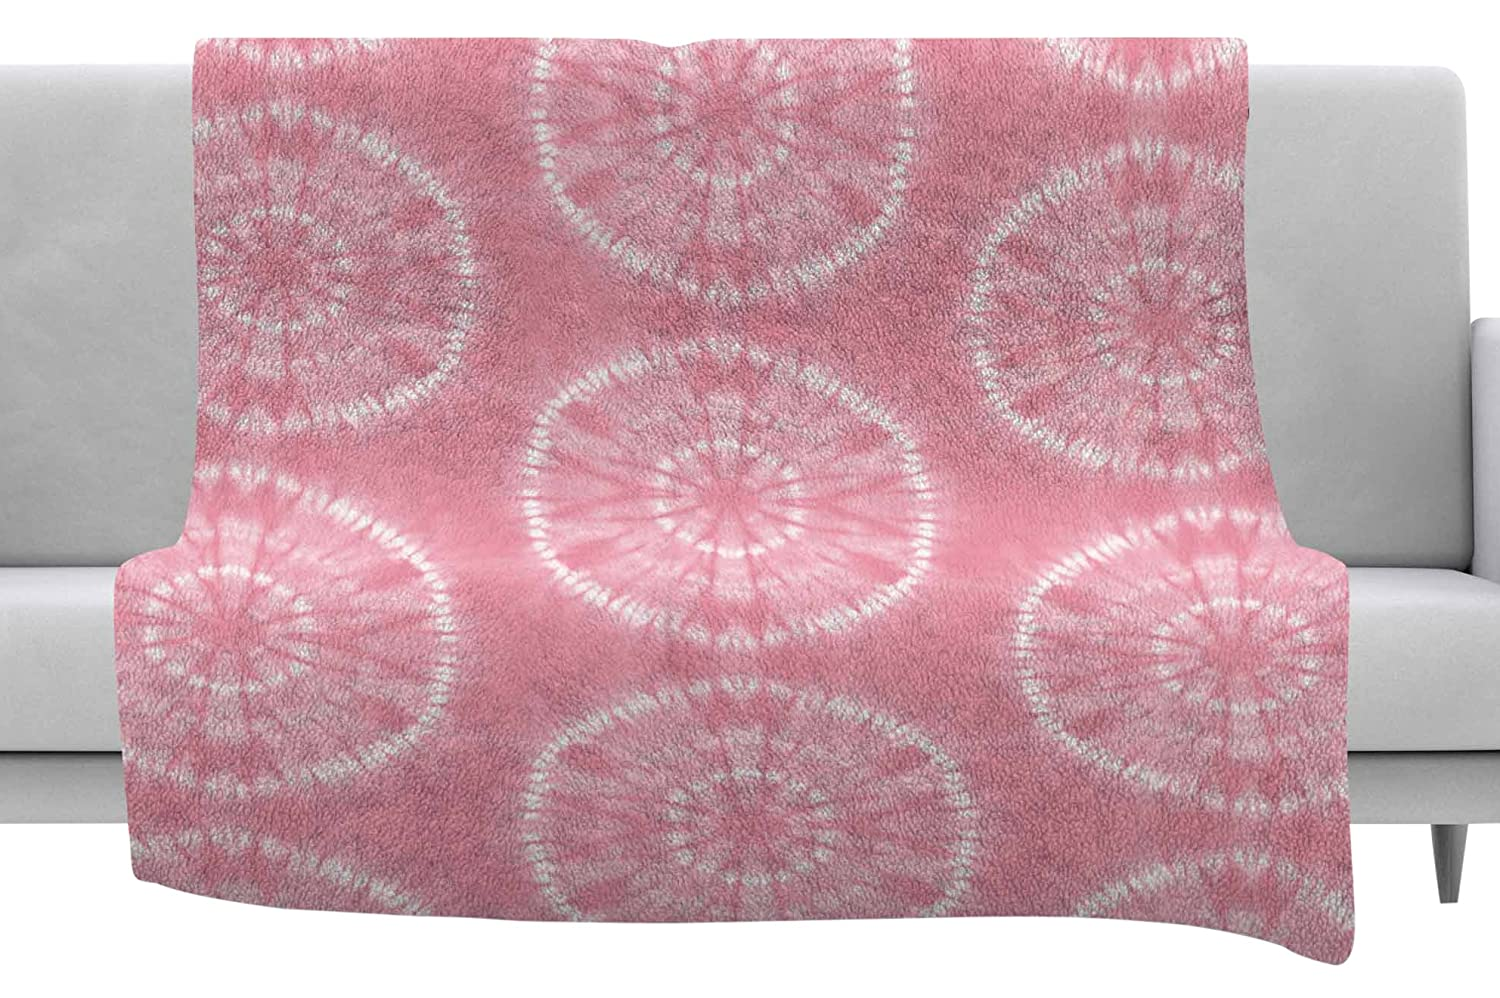 Insert Included Printed in The USA Rikki Knight Dis-16thrwfill-3616 16 X 16 Aged 35 Perfection Birthday Microfiber Throw Pillow Cushion Square with Hidden Zipper